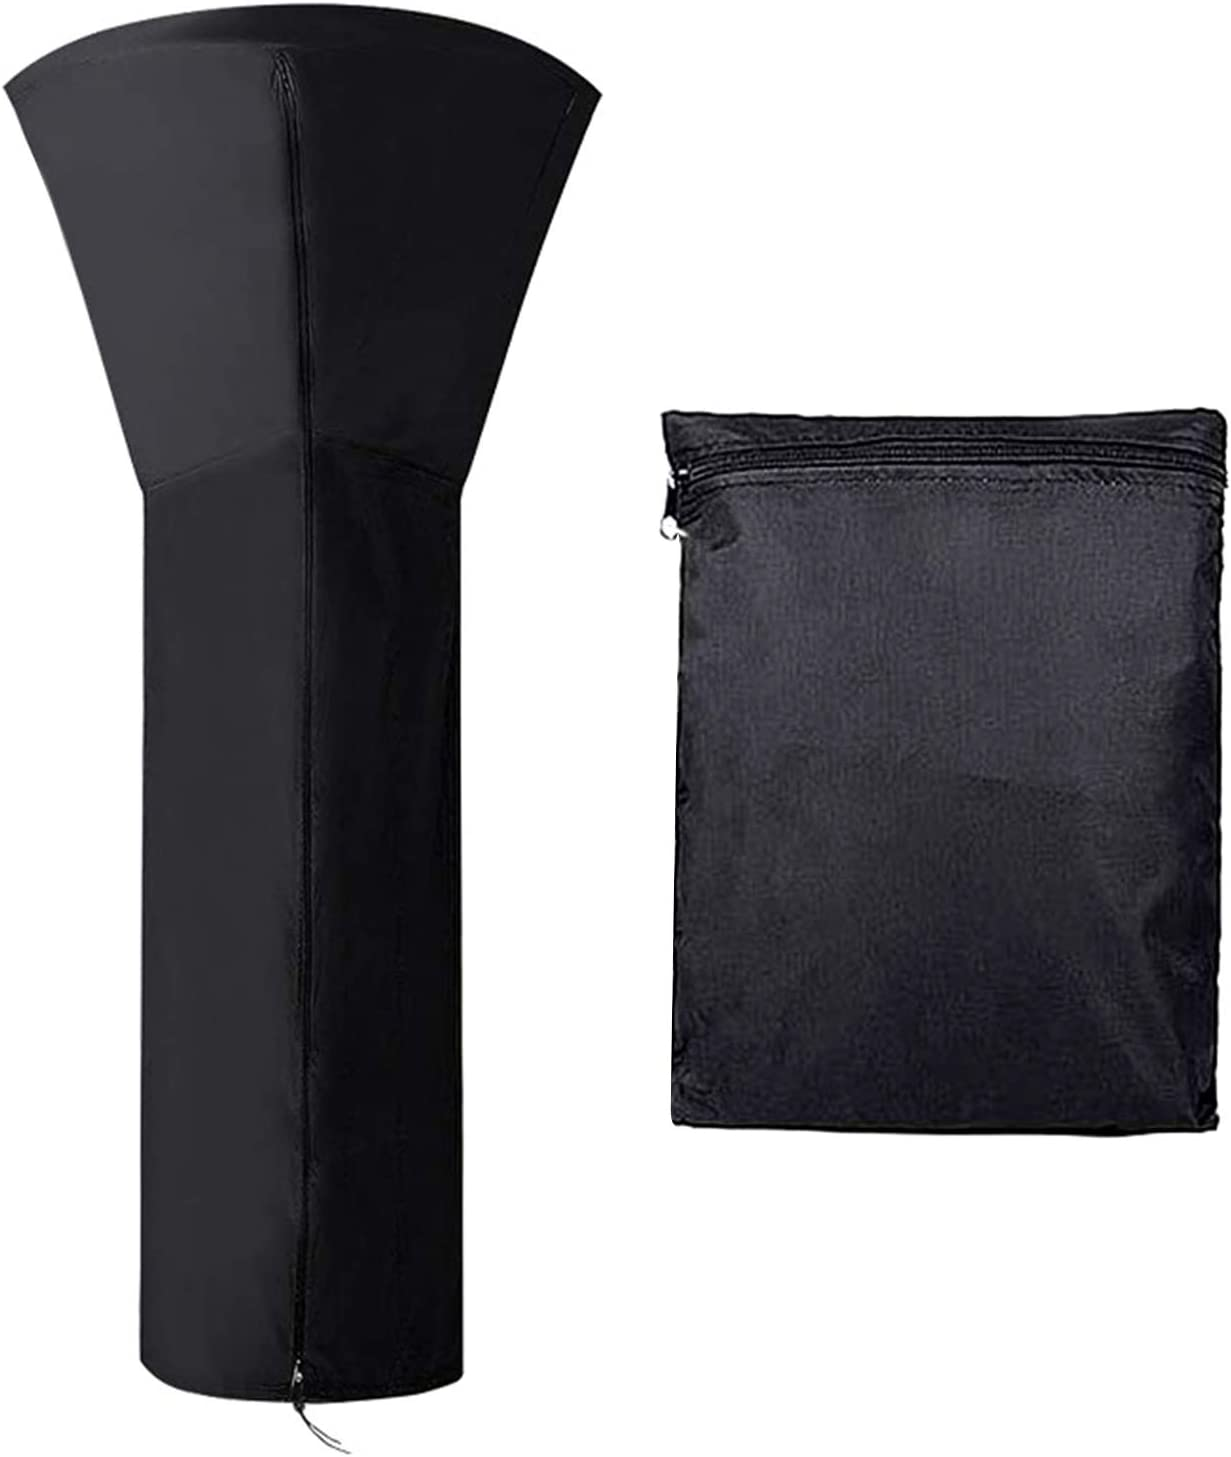 Delokey Patio Heater Covers with Zipper Waterproof Garden Heavy Duty Stand Up Patio Heater Cover with Storage Bag in Black (94.4x36.2x23.2 in)